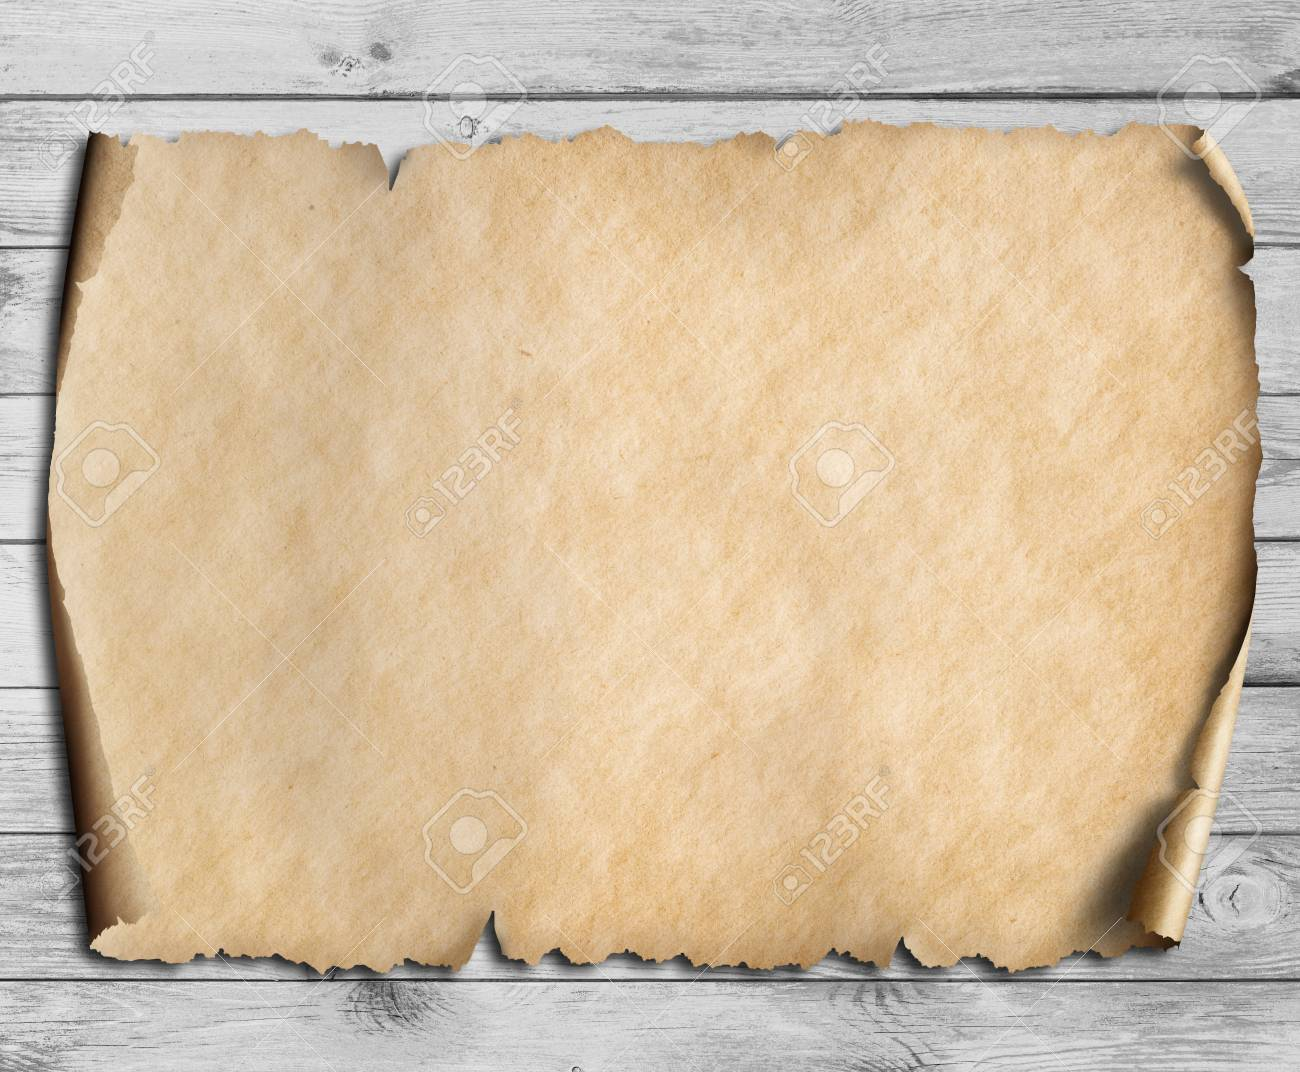 vintage scroll or map on wooden table - 75758046